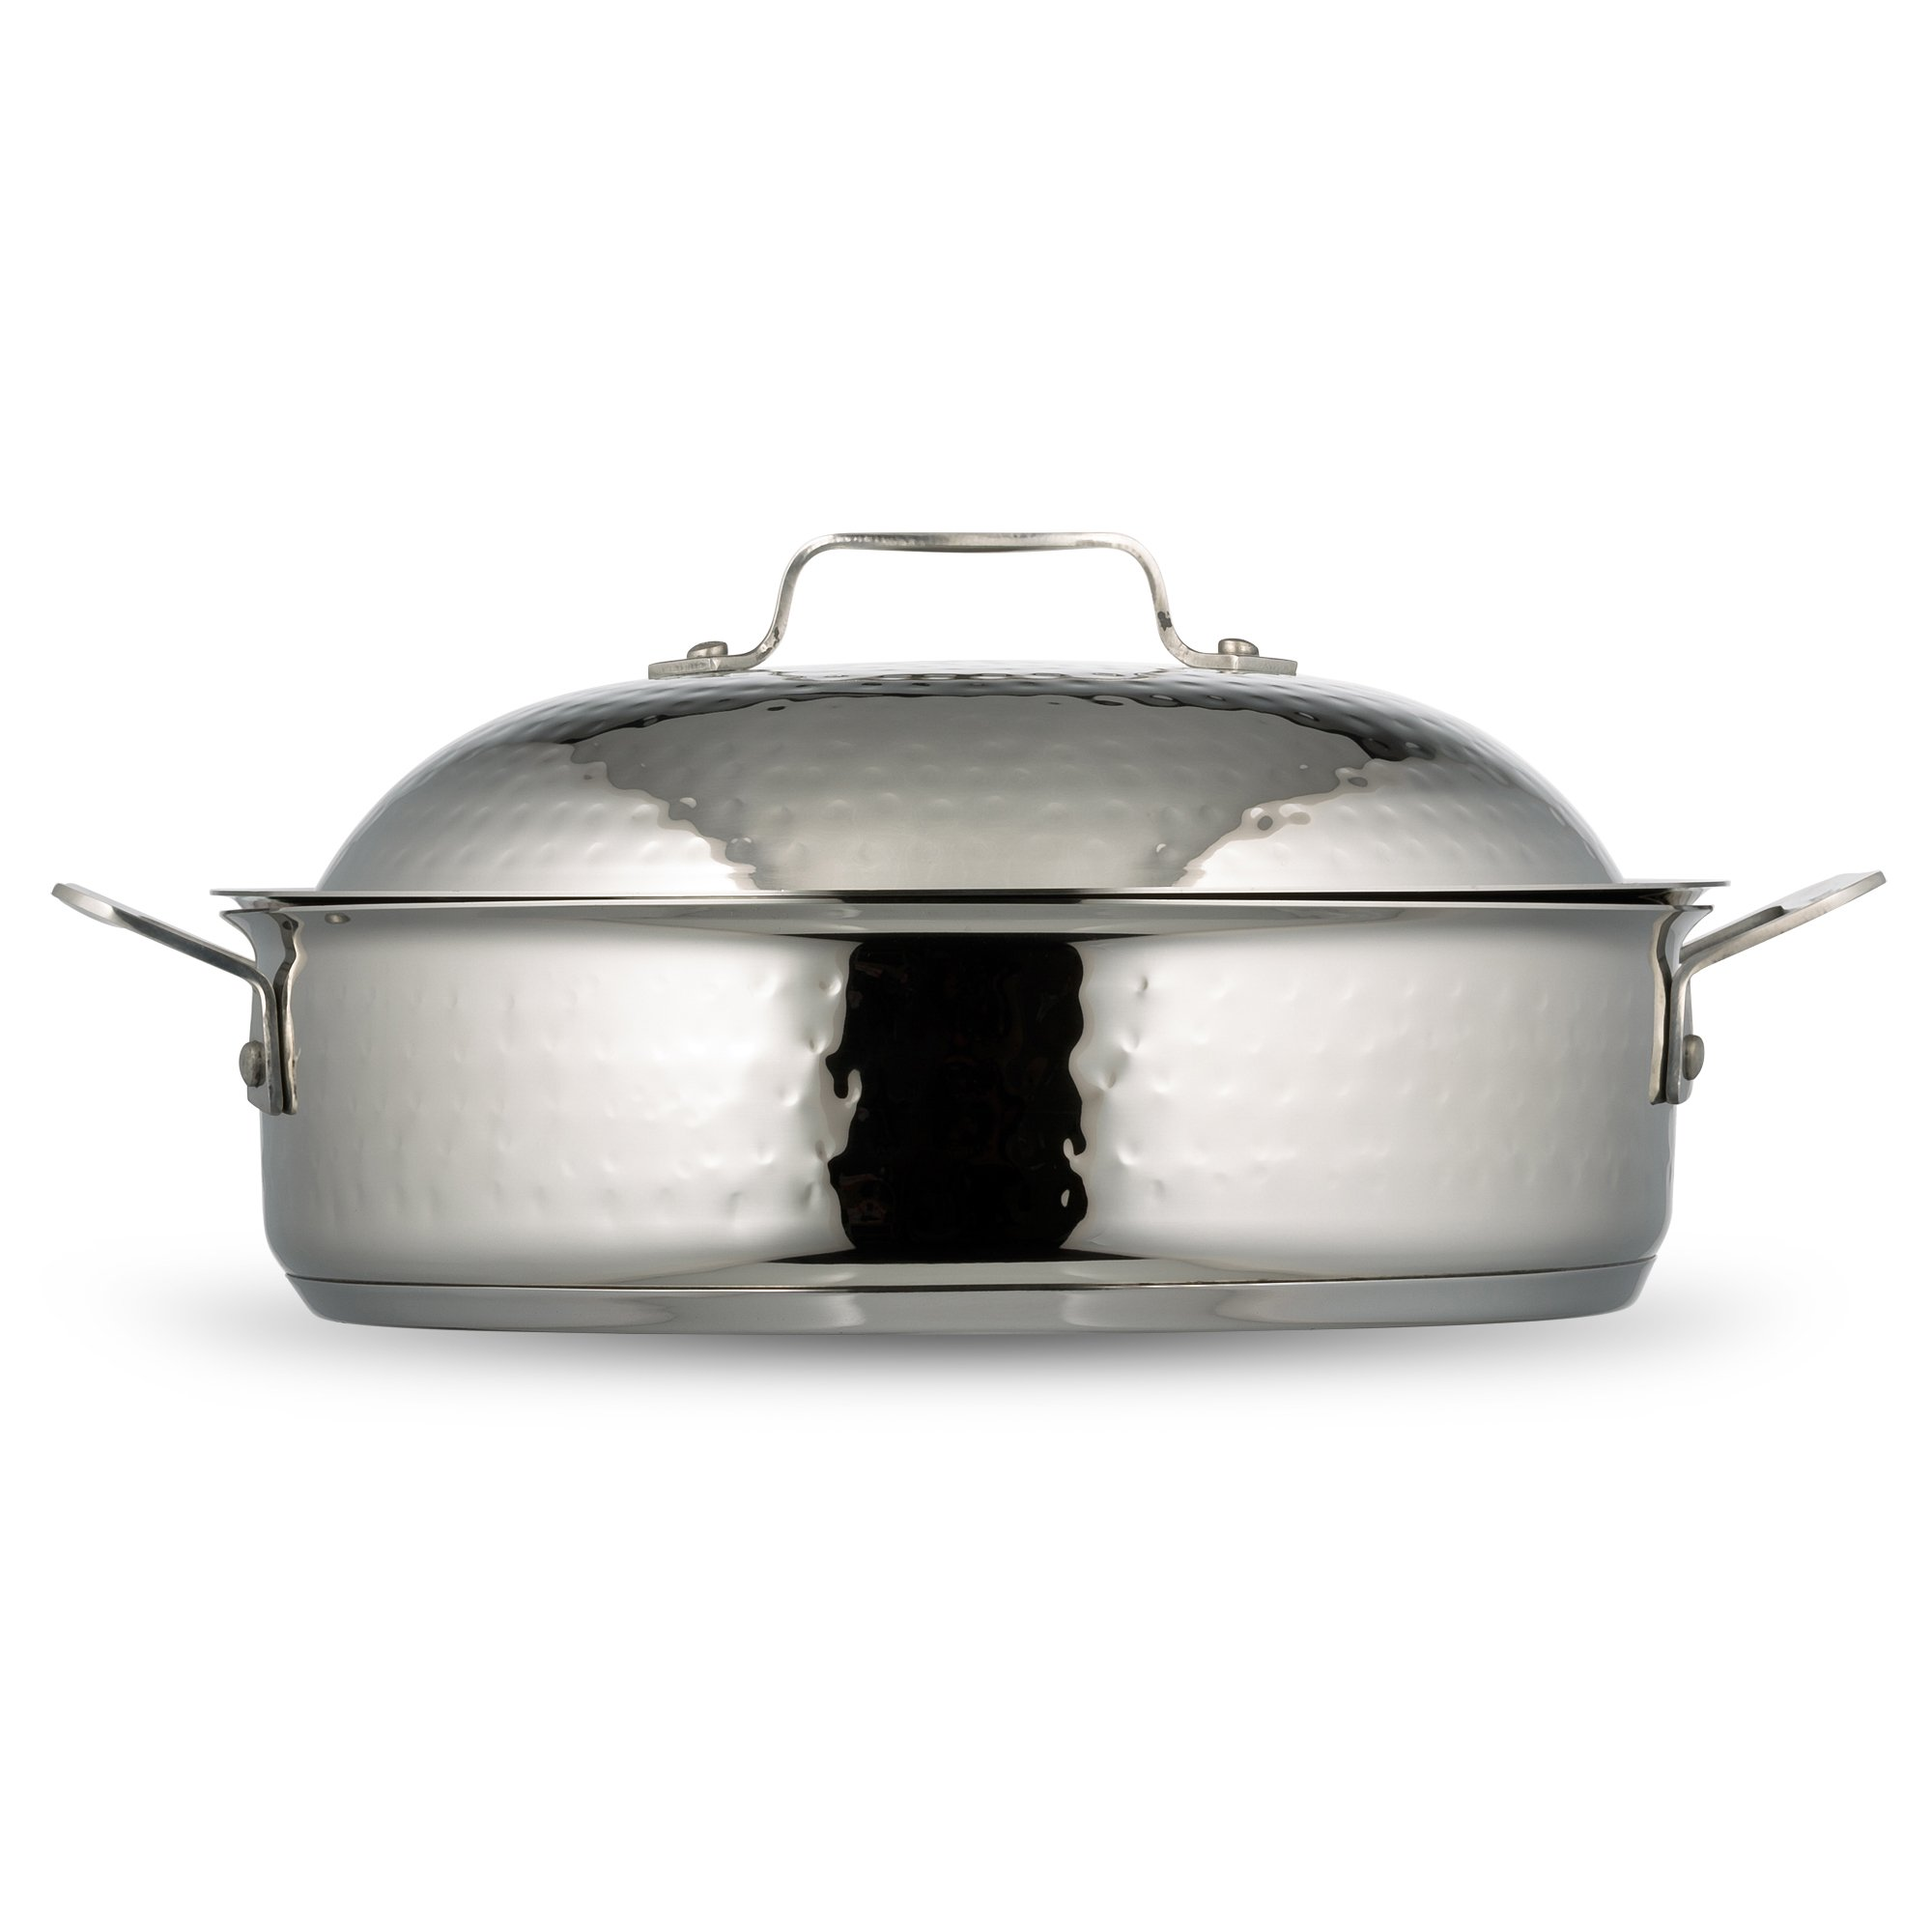 Bon Chef 60001HF Stainless Steel Induction Bottom Cucina Saute Pan with Lid, Hammered Finish, 4 quart Capacity, 13-29/32'' Length x 11-19/64'' Width x 3'' Height by Bon Chef